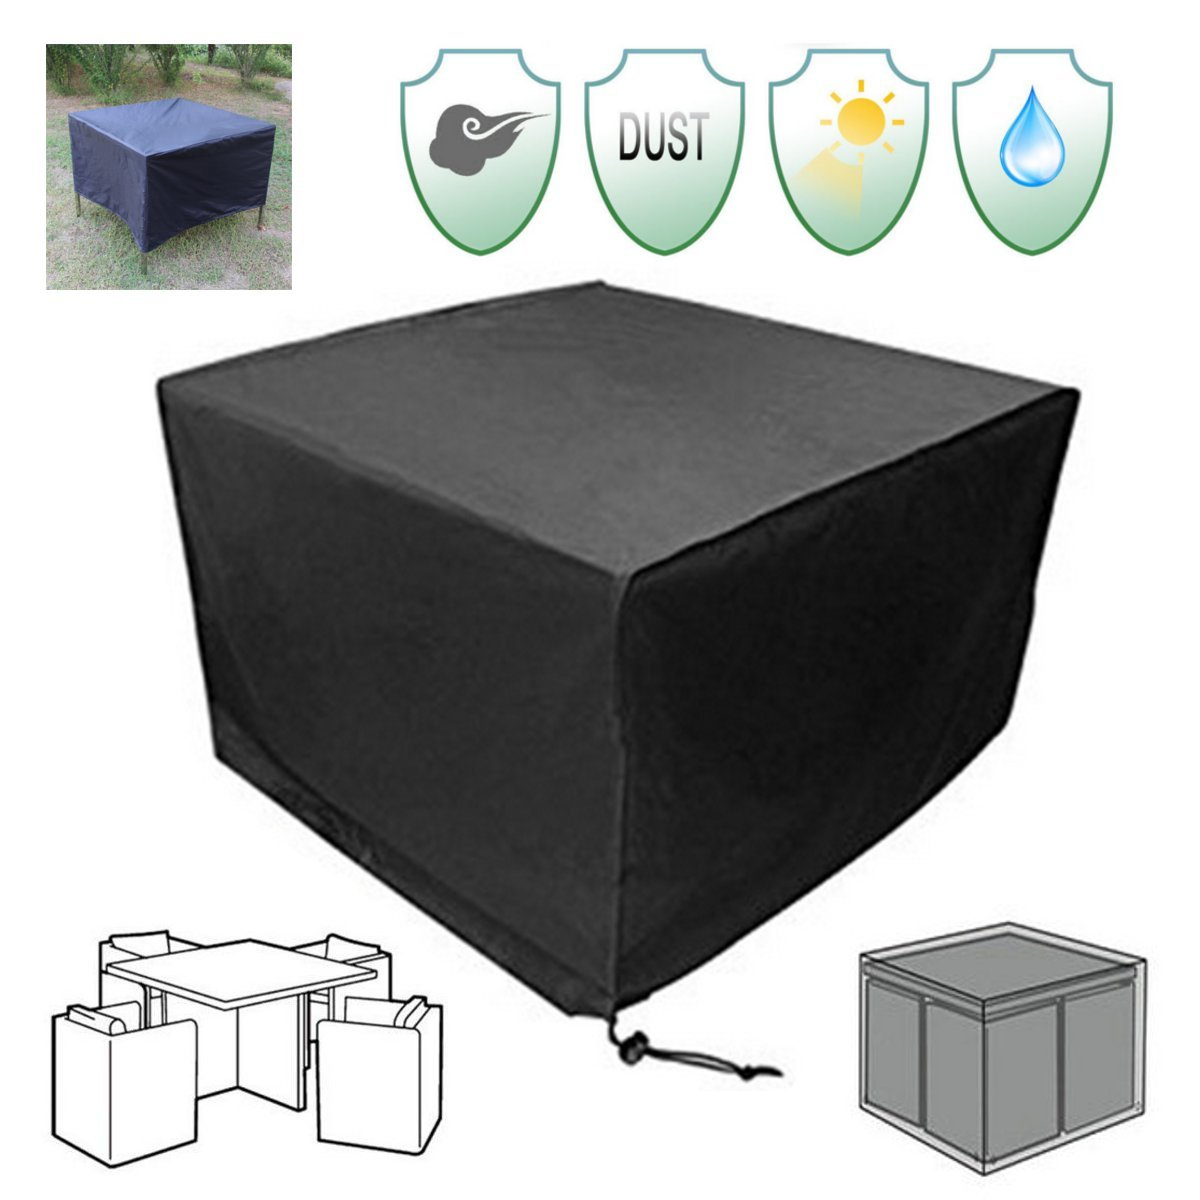 45''x45''x29'' Black Outdoor Garden Yard Patio Waterproof Cube Table Furniture Cover  Furniture Outdoor Outside Cover Protection Canopy Awning Cloth Shade Sun Patio Garden Table Chair